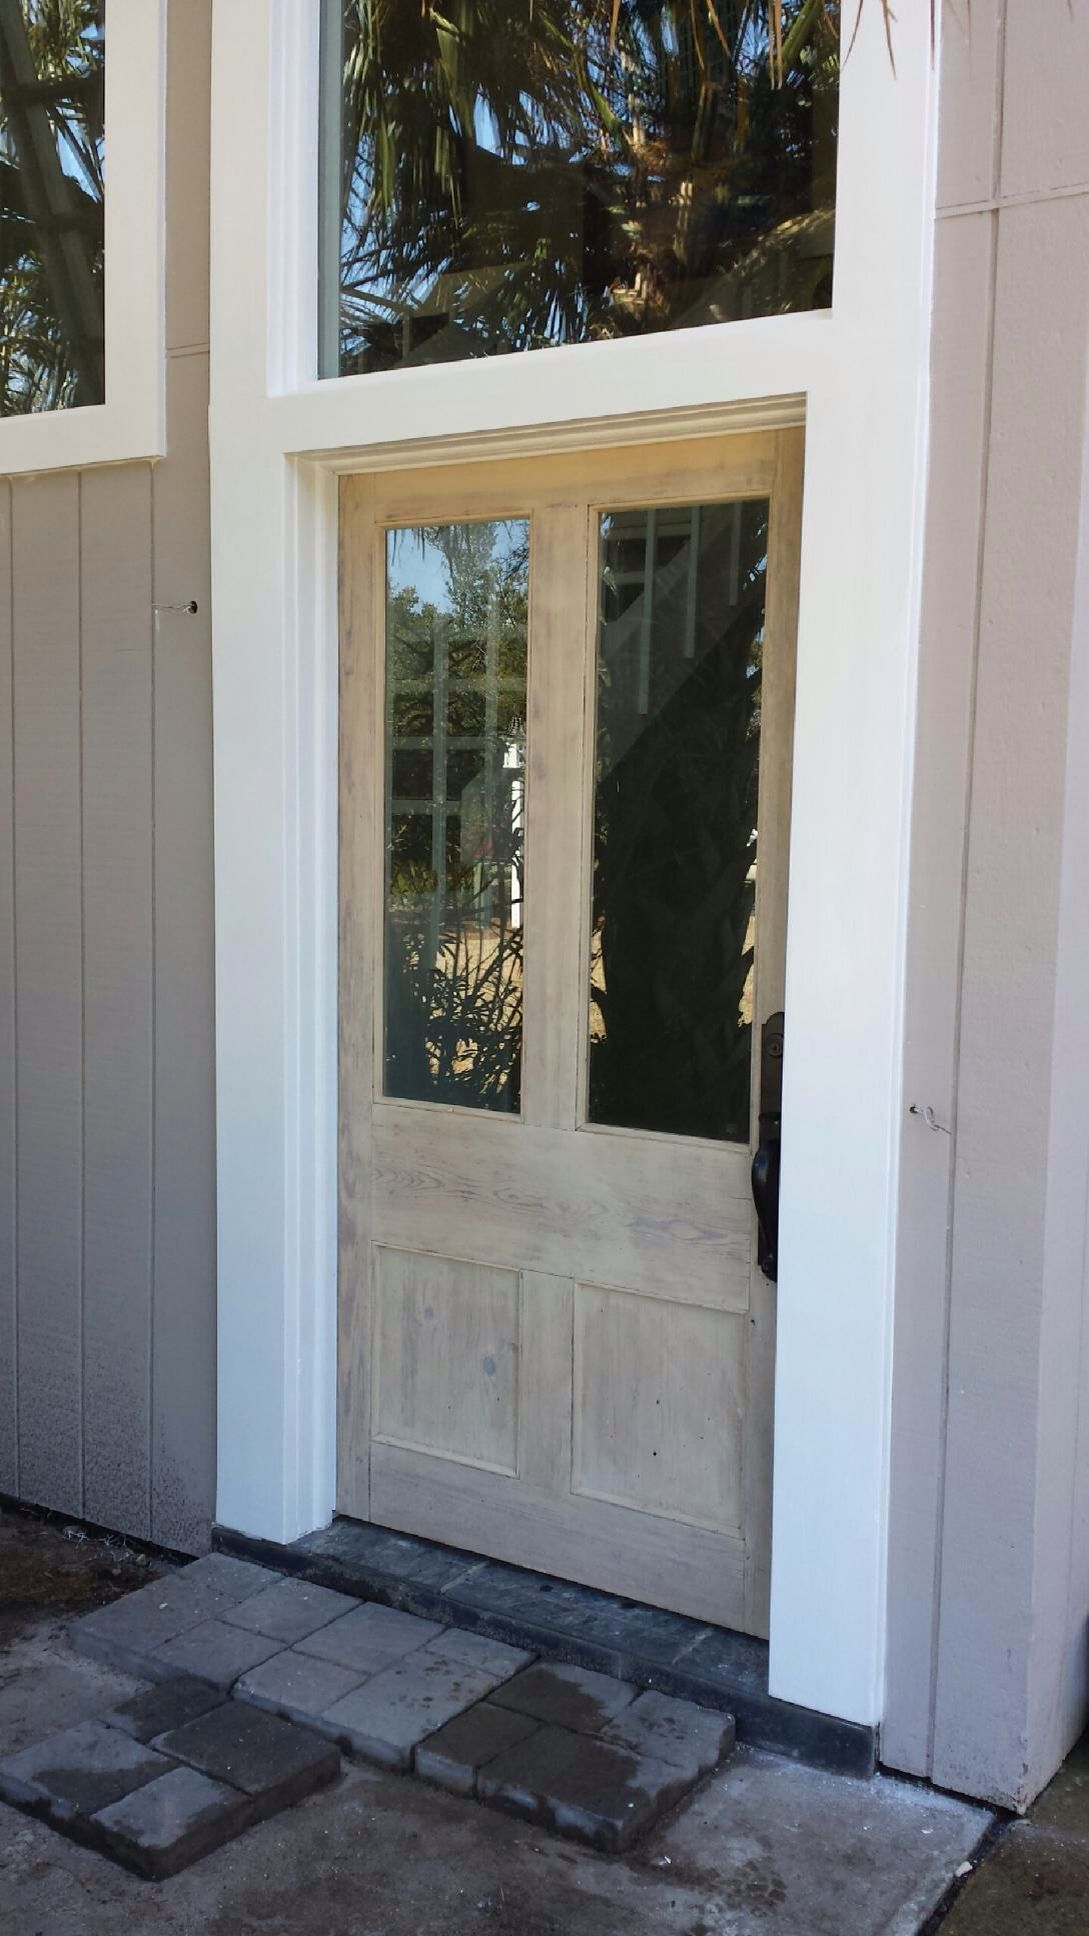 Antique door restored for North Carolina beach house. - Antique Door Restored For North Carolina Beach House. Doors In